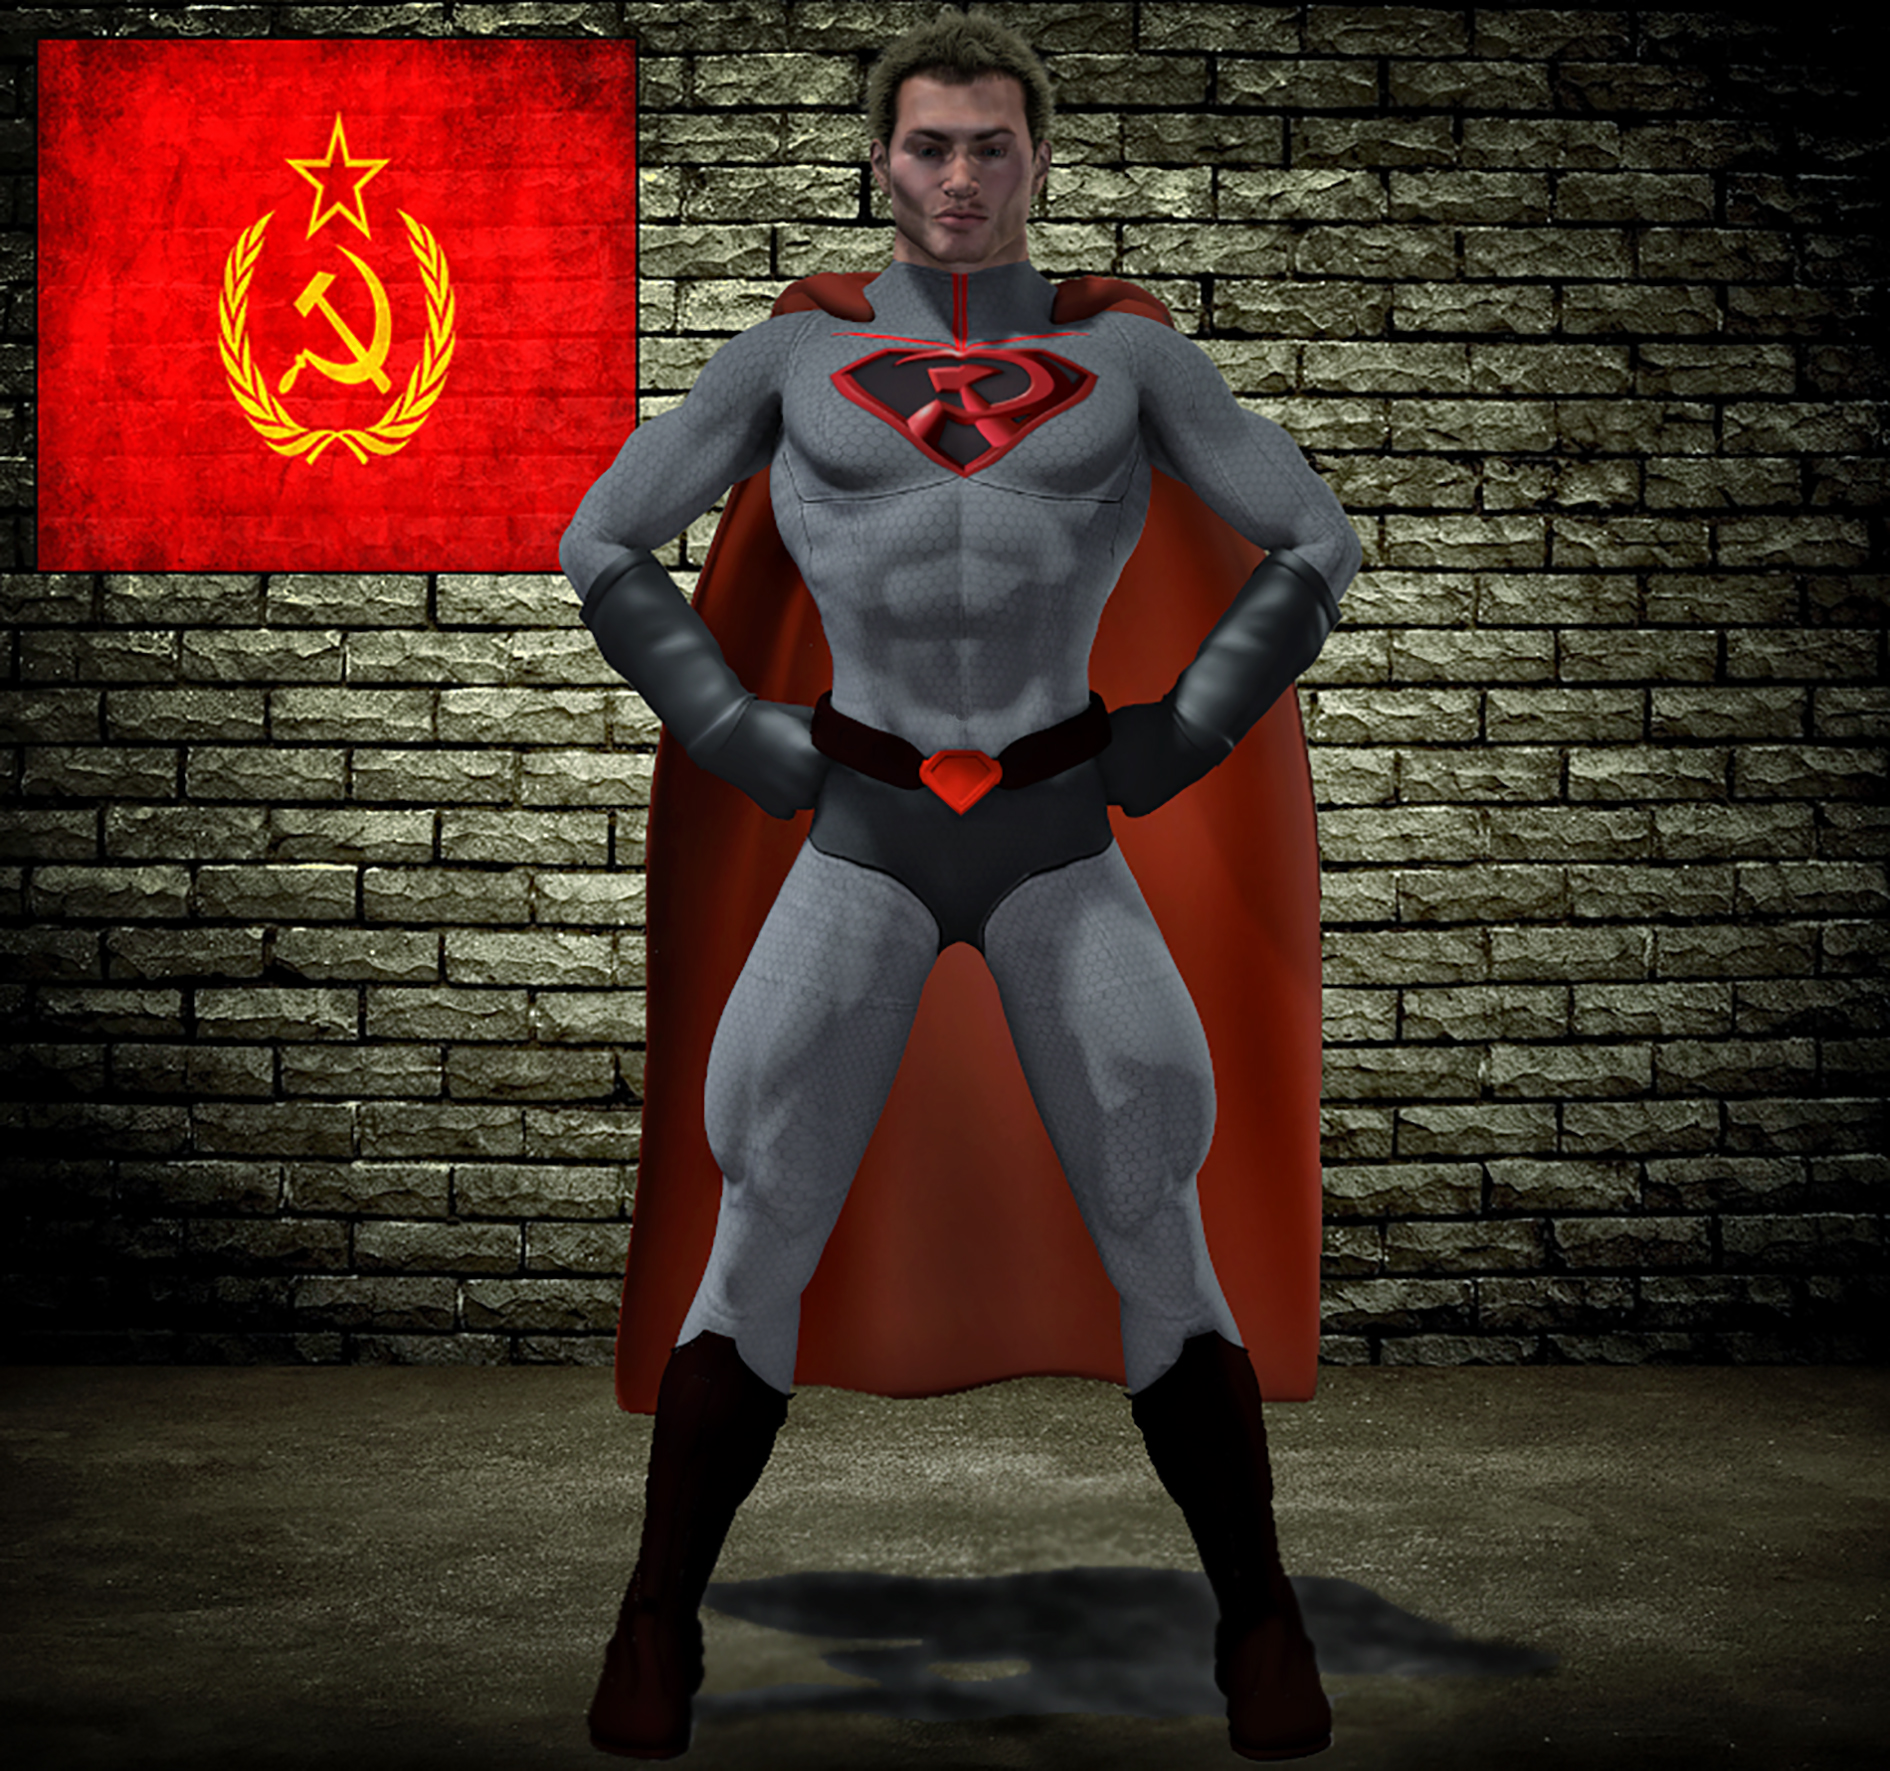 Superman red son second skin textures for M4